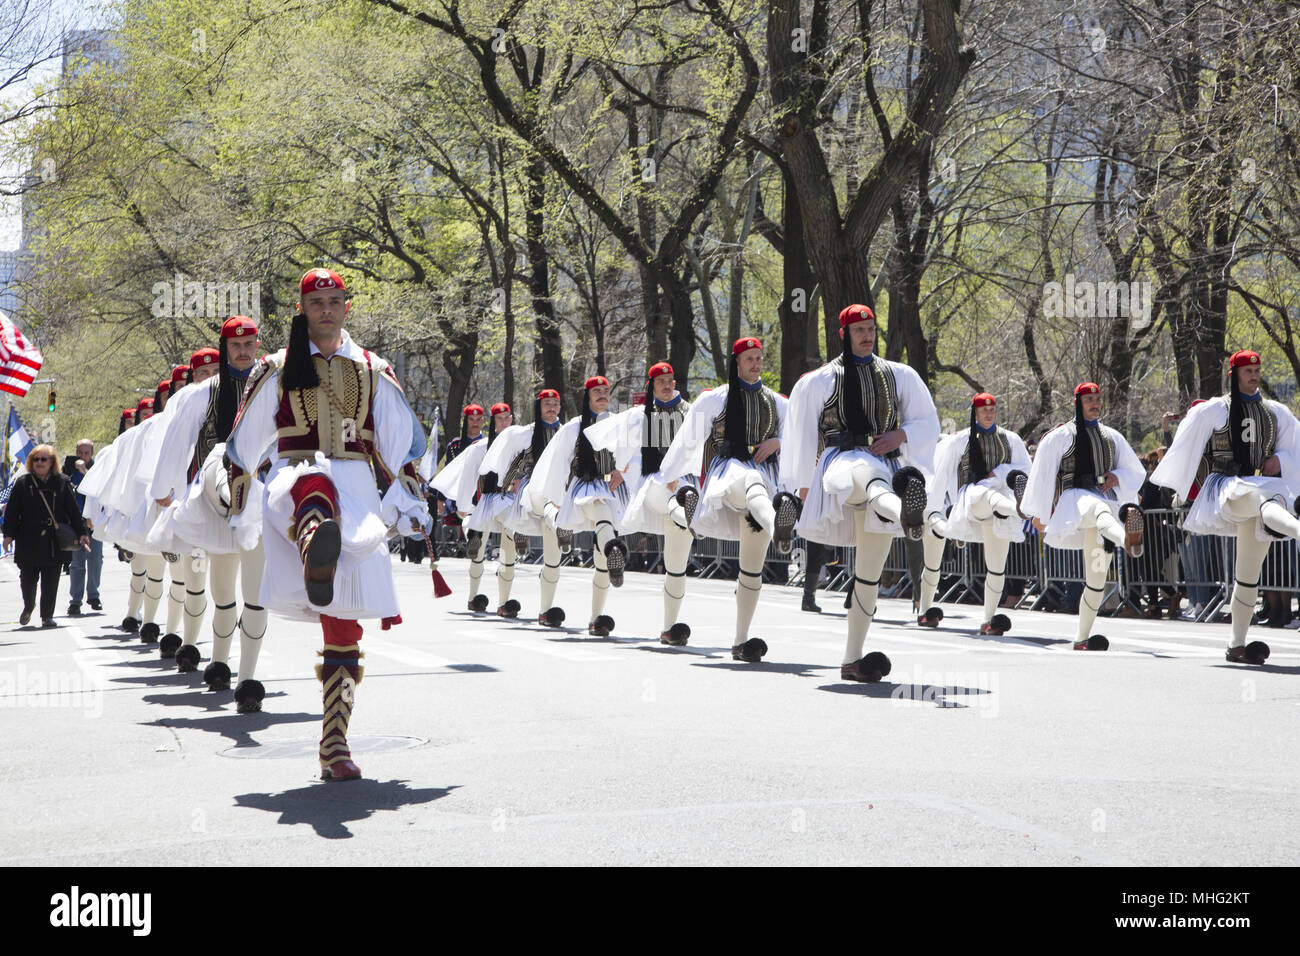 Greek Independence Day Parade in New York City. Greek President's Guard march in the parade up 5th Avenue. - Stock Image